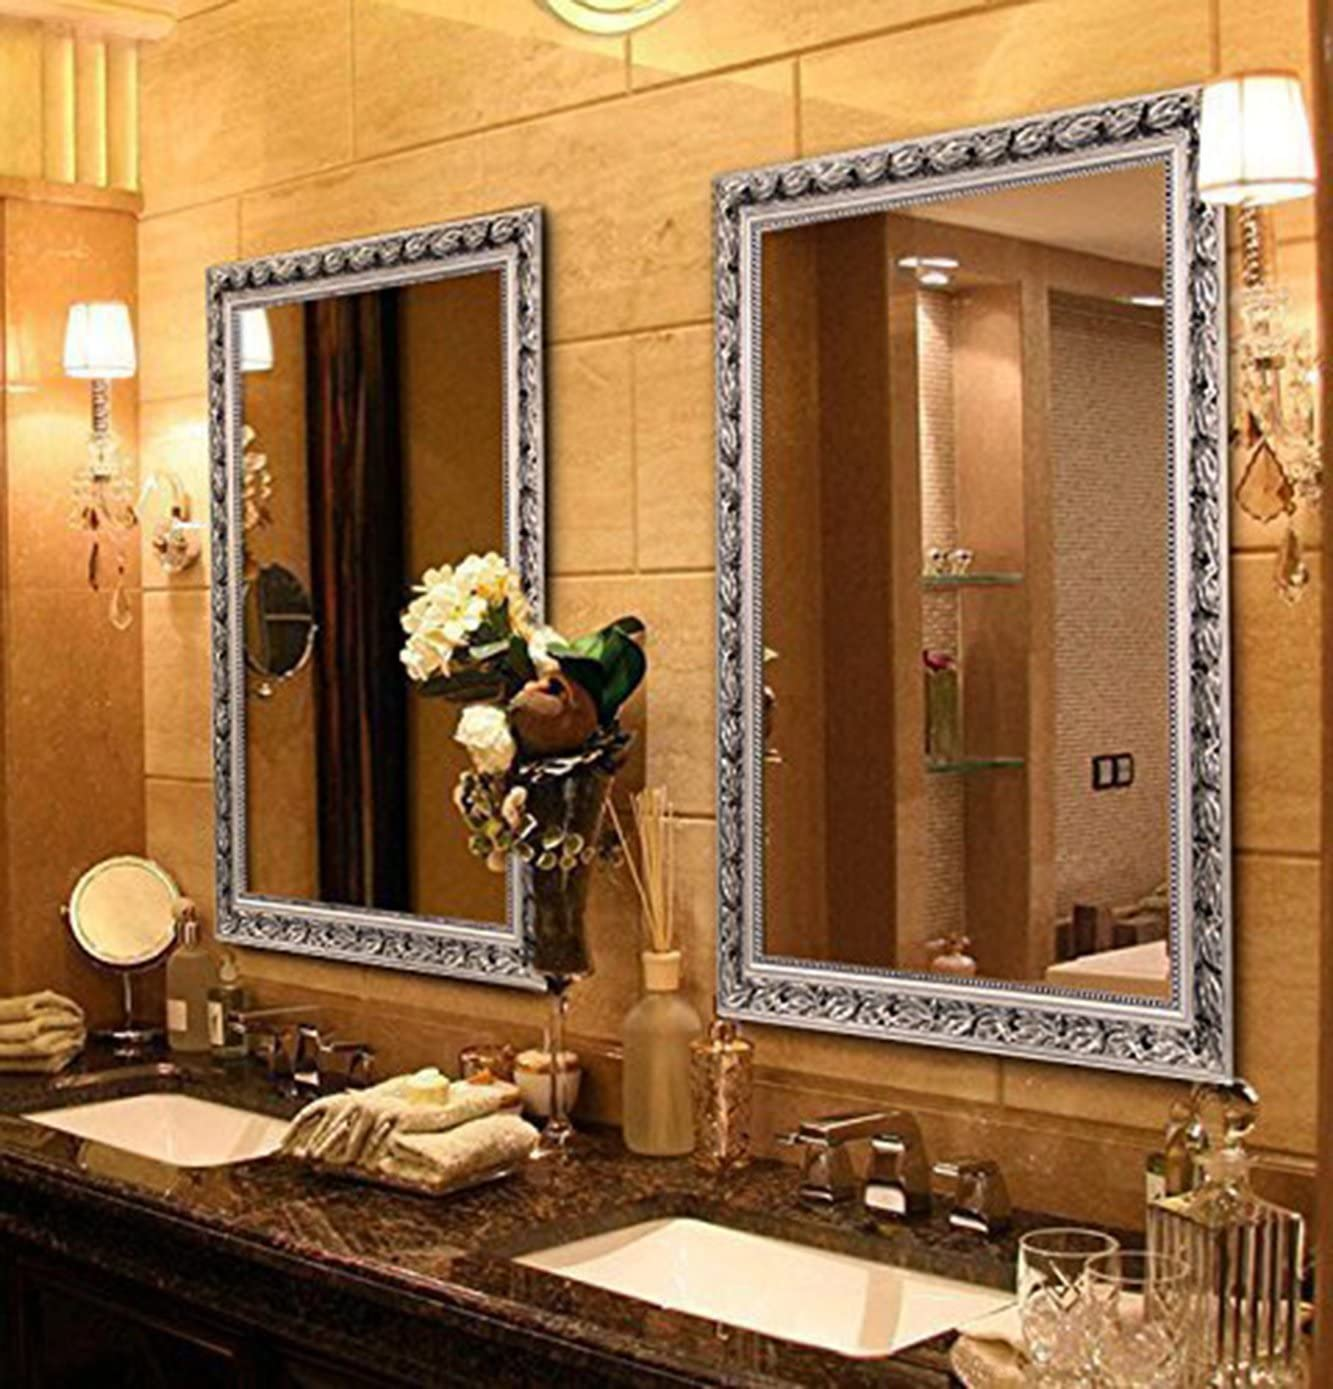 Amazon Com Hans Alice Large Rectangular Bathroom Mirror Wall Mounted Wooden Frame Vanity Mirror Silver 32 X24 Home Kitchen